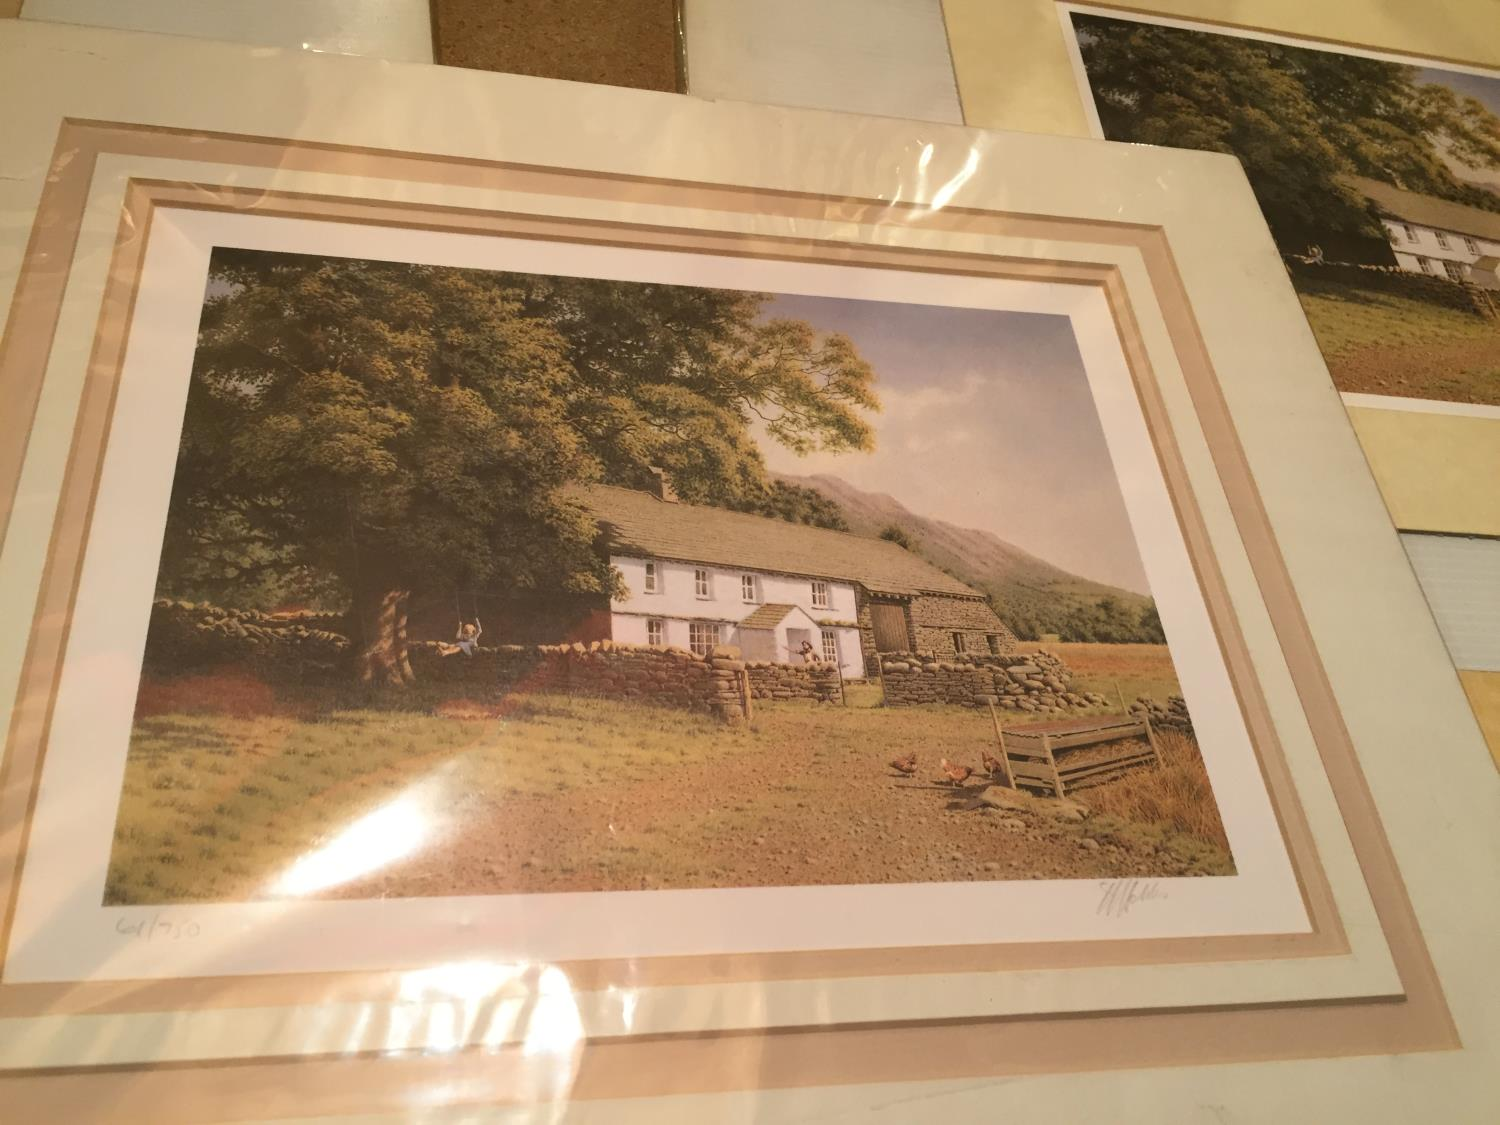 THREE MOUNTED SIGNED PRINTS OF FARM SCENES IN A HARDBACK PROTECTIVE FOLDER - Image 7 of 12